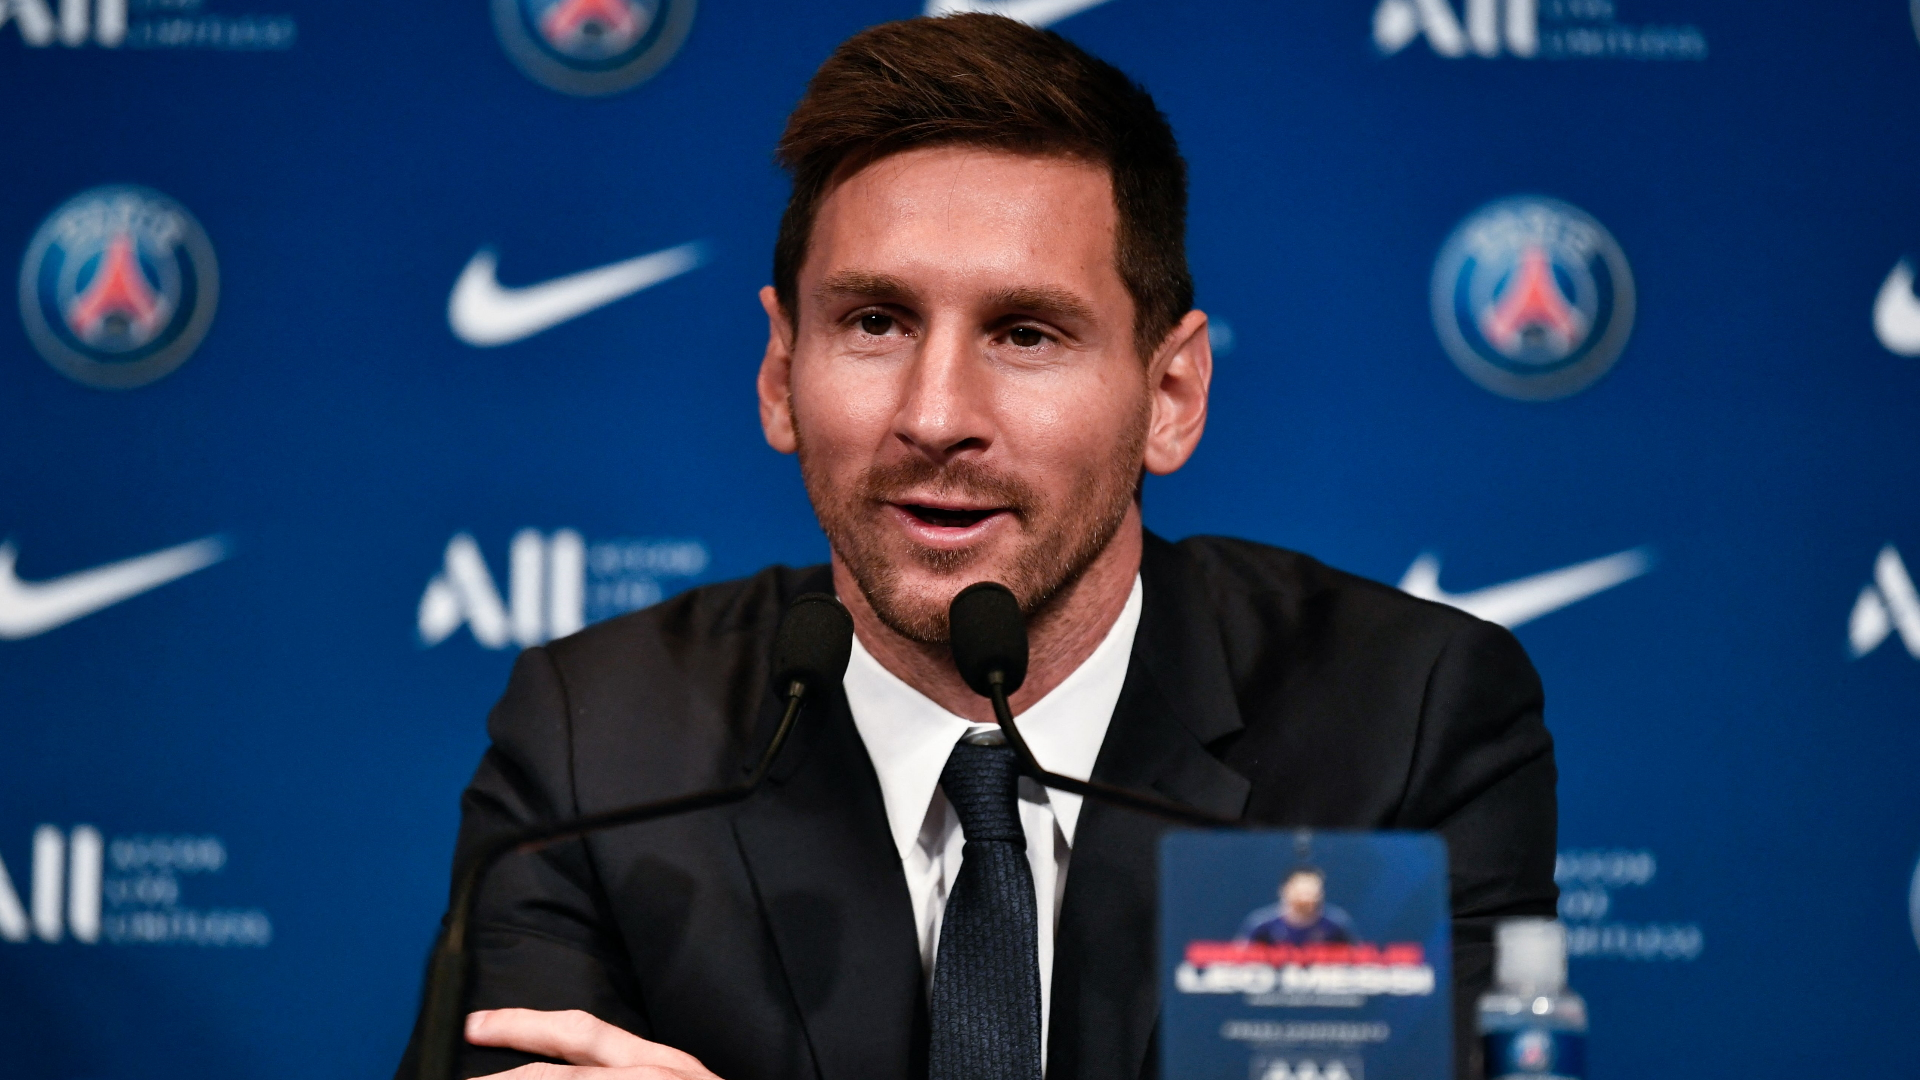 Messi to PSG LIVE: Argentina star's official unveiling & press conference